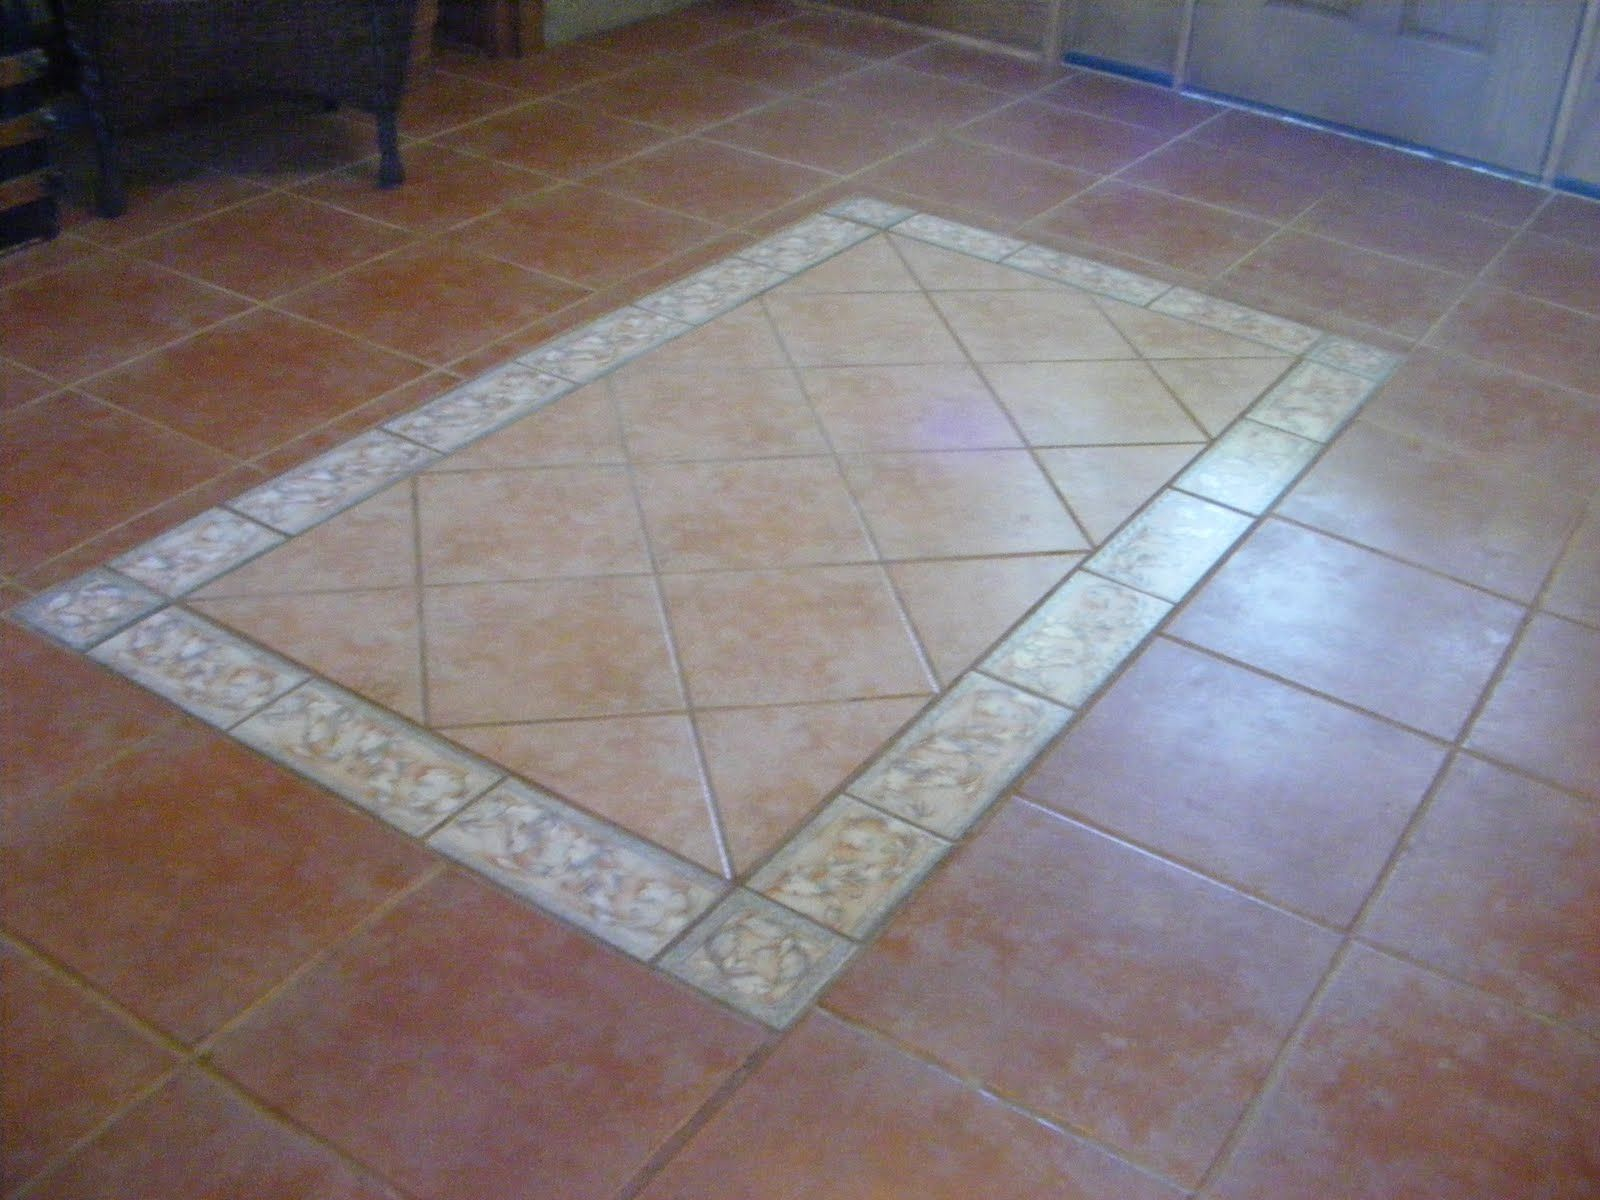 Tile Flooring Design Ideas floor tile design ideas Tile Flooring Designs Ideas Natural Clay Ceramic Tiles With Brown Tile Design Tile Countertops Of Awesome Pictures Of Tile Floor Patterns Design From